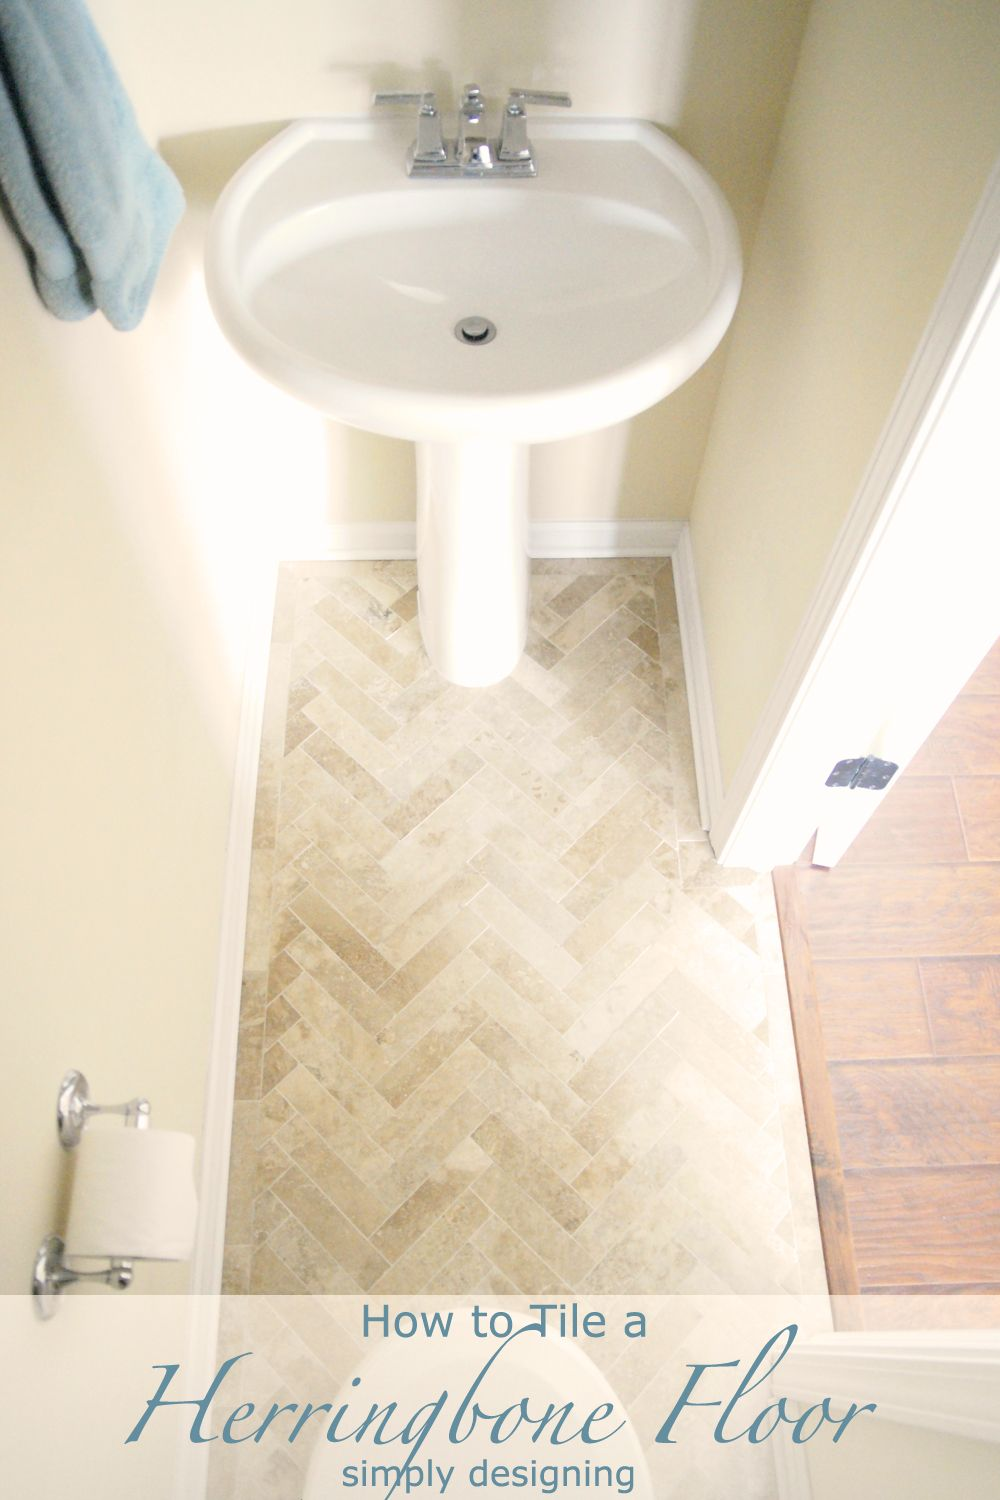 Herringbone Tile Floor - How to Prep, Lay, and Install | Pinterest ...